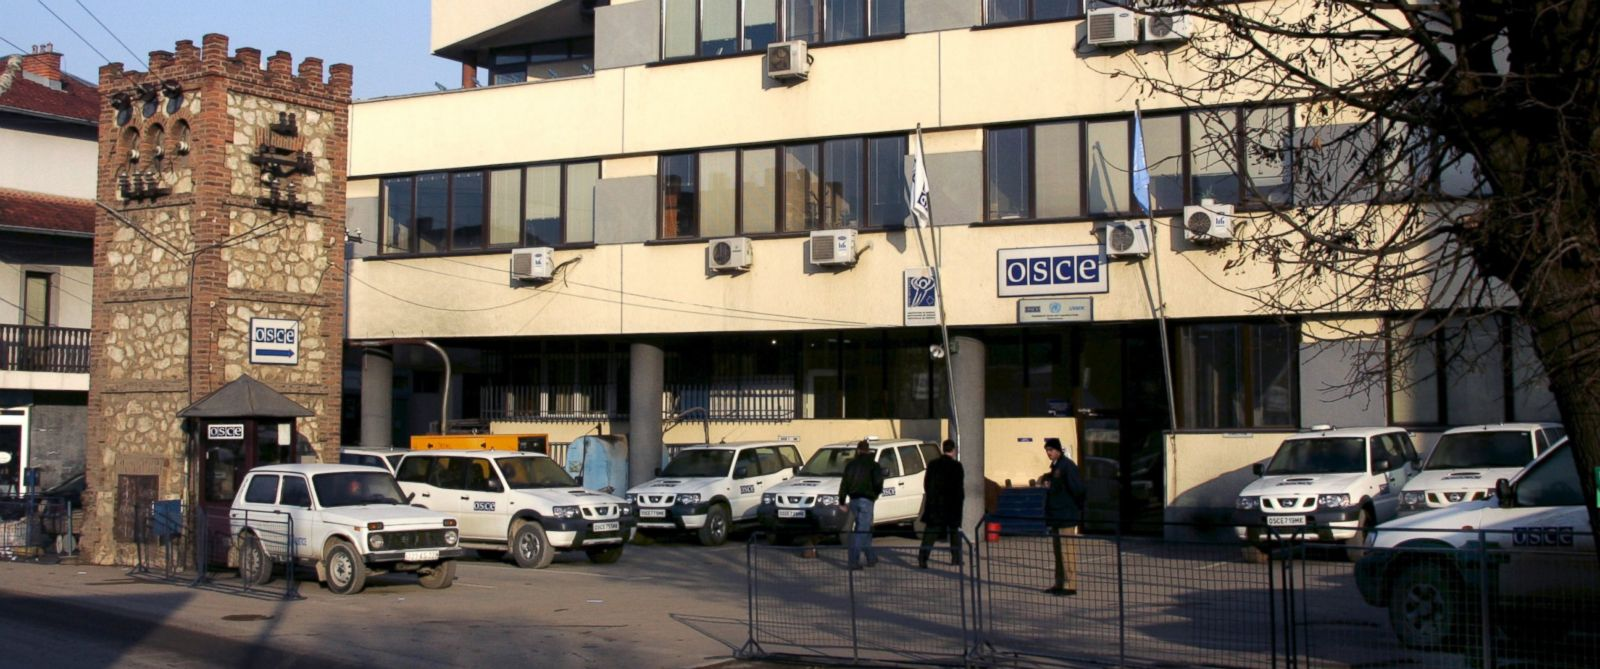 PHOTO: The exterior of the Kosovar headquarters of the OSCE in the city of Prizen, as seen on Dec. 14, 2006.